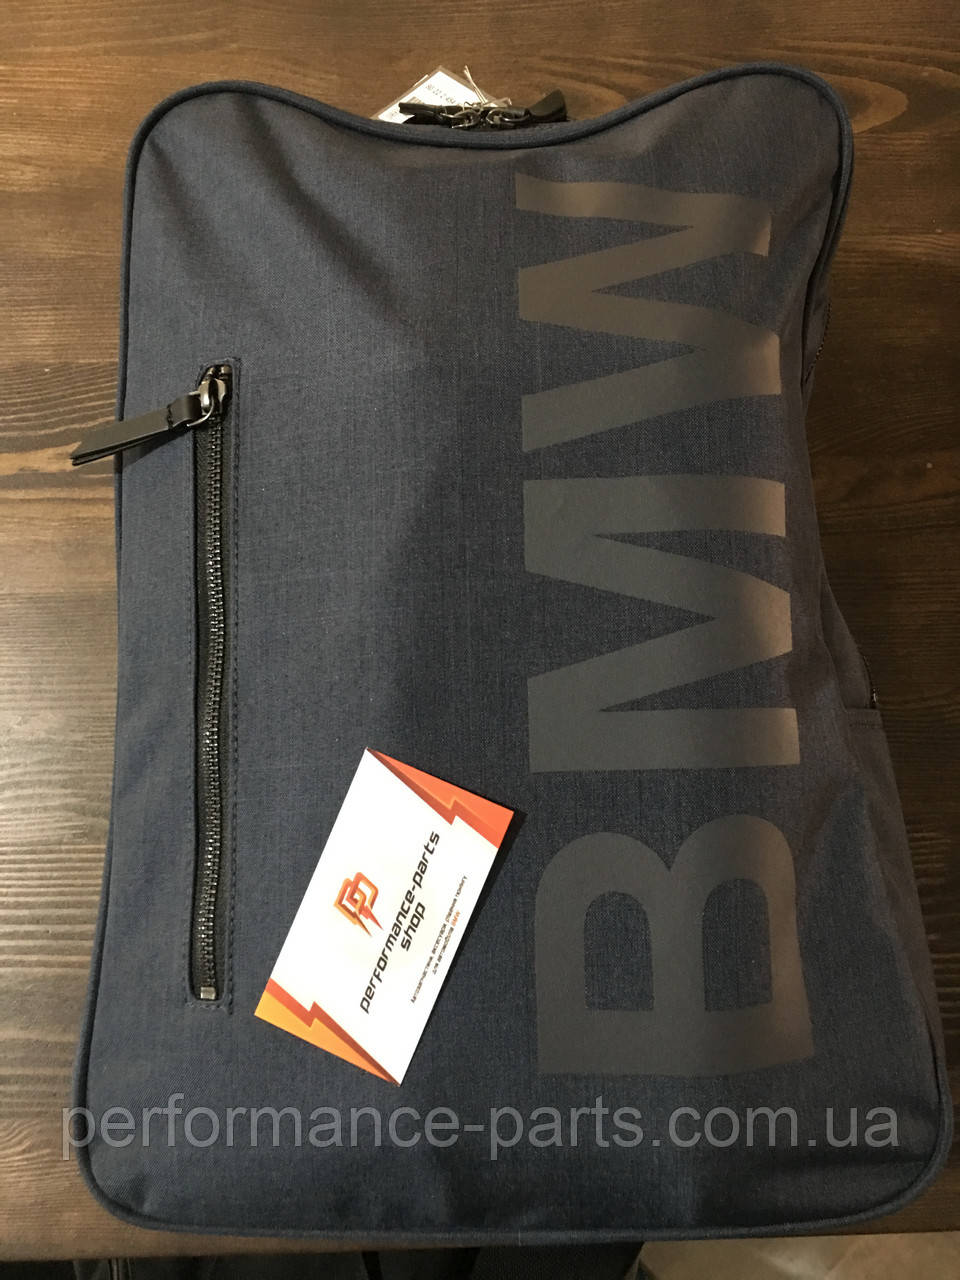 Рюкзак BMW Backpack Modern, 80222454685. Оригинал. Синего цвета.